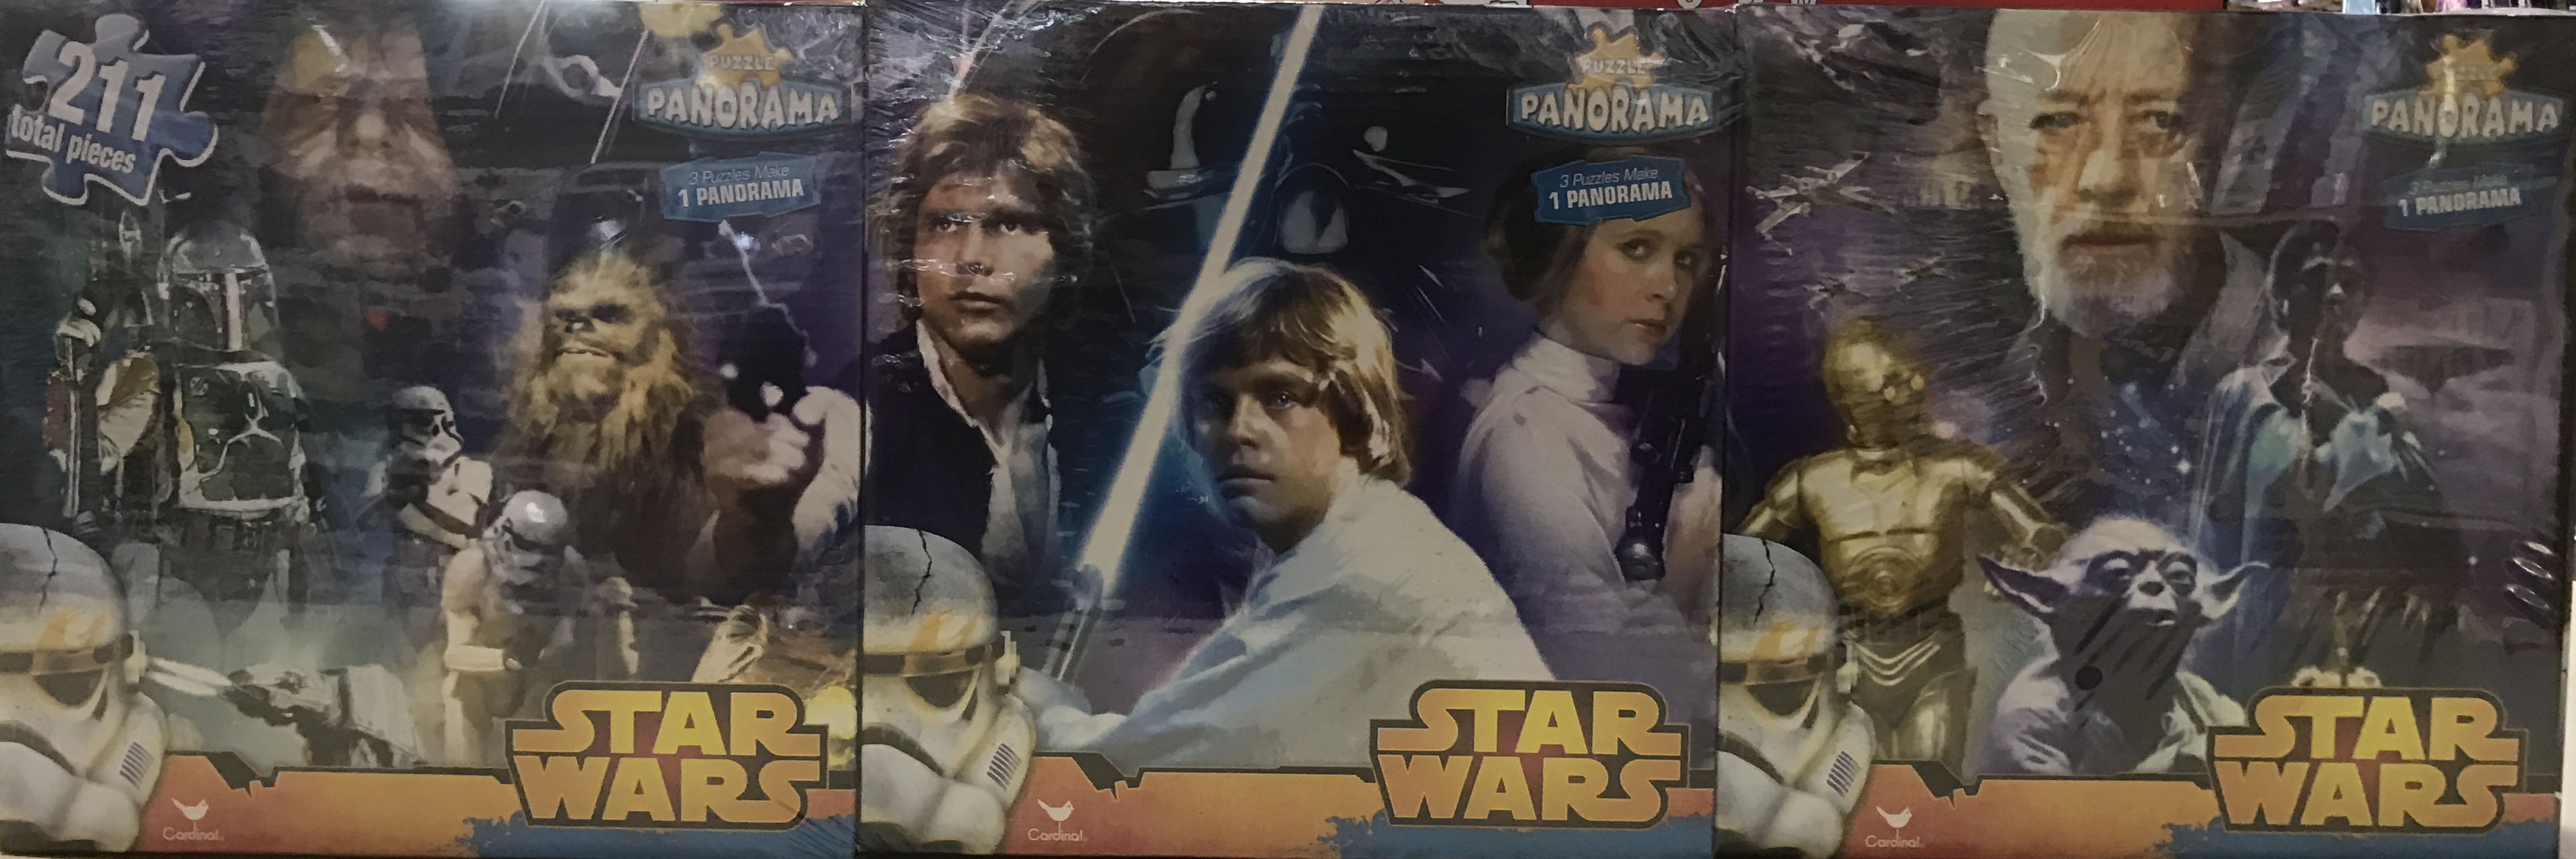 Puzzle Star Wars Original Trilogy 3 in 1 Panorama Puzzle Set 211 Total Pieces